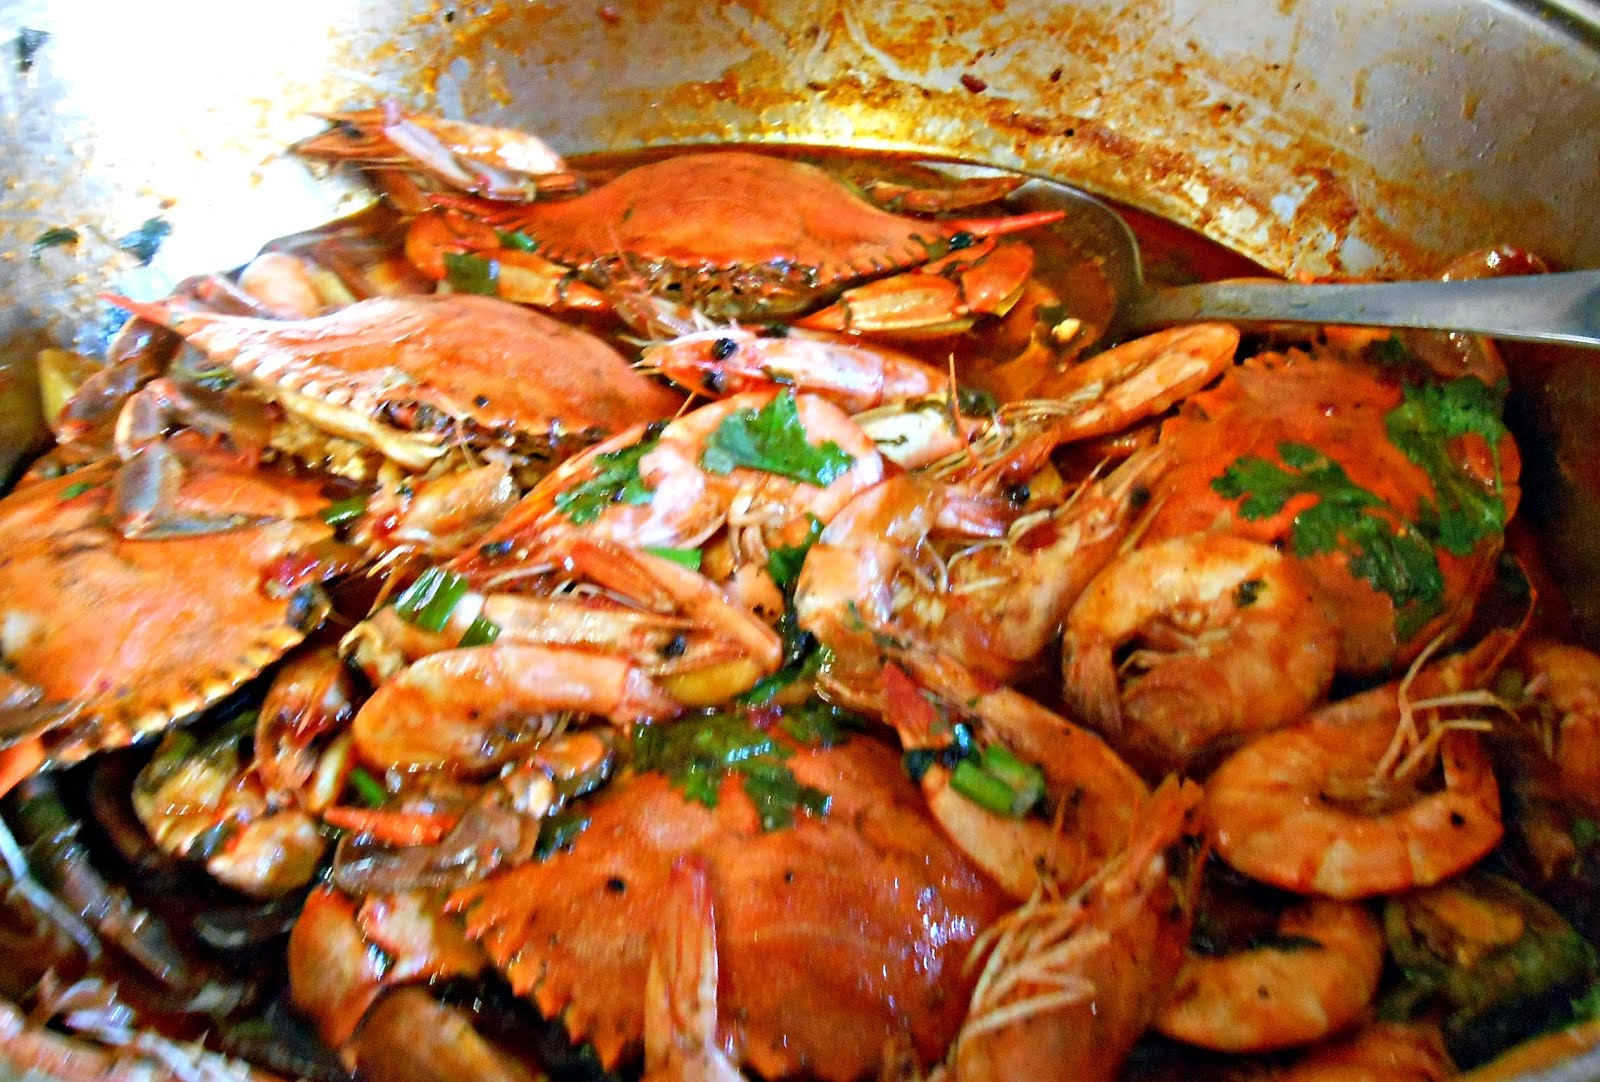 Singapore-Style Chili Crab and Shrimp | Not a Chef, but I can Cook!